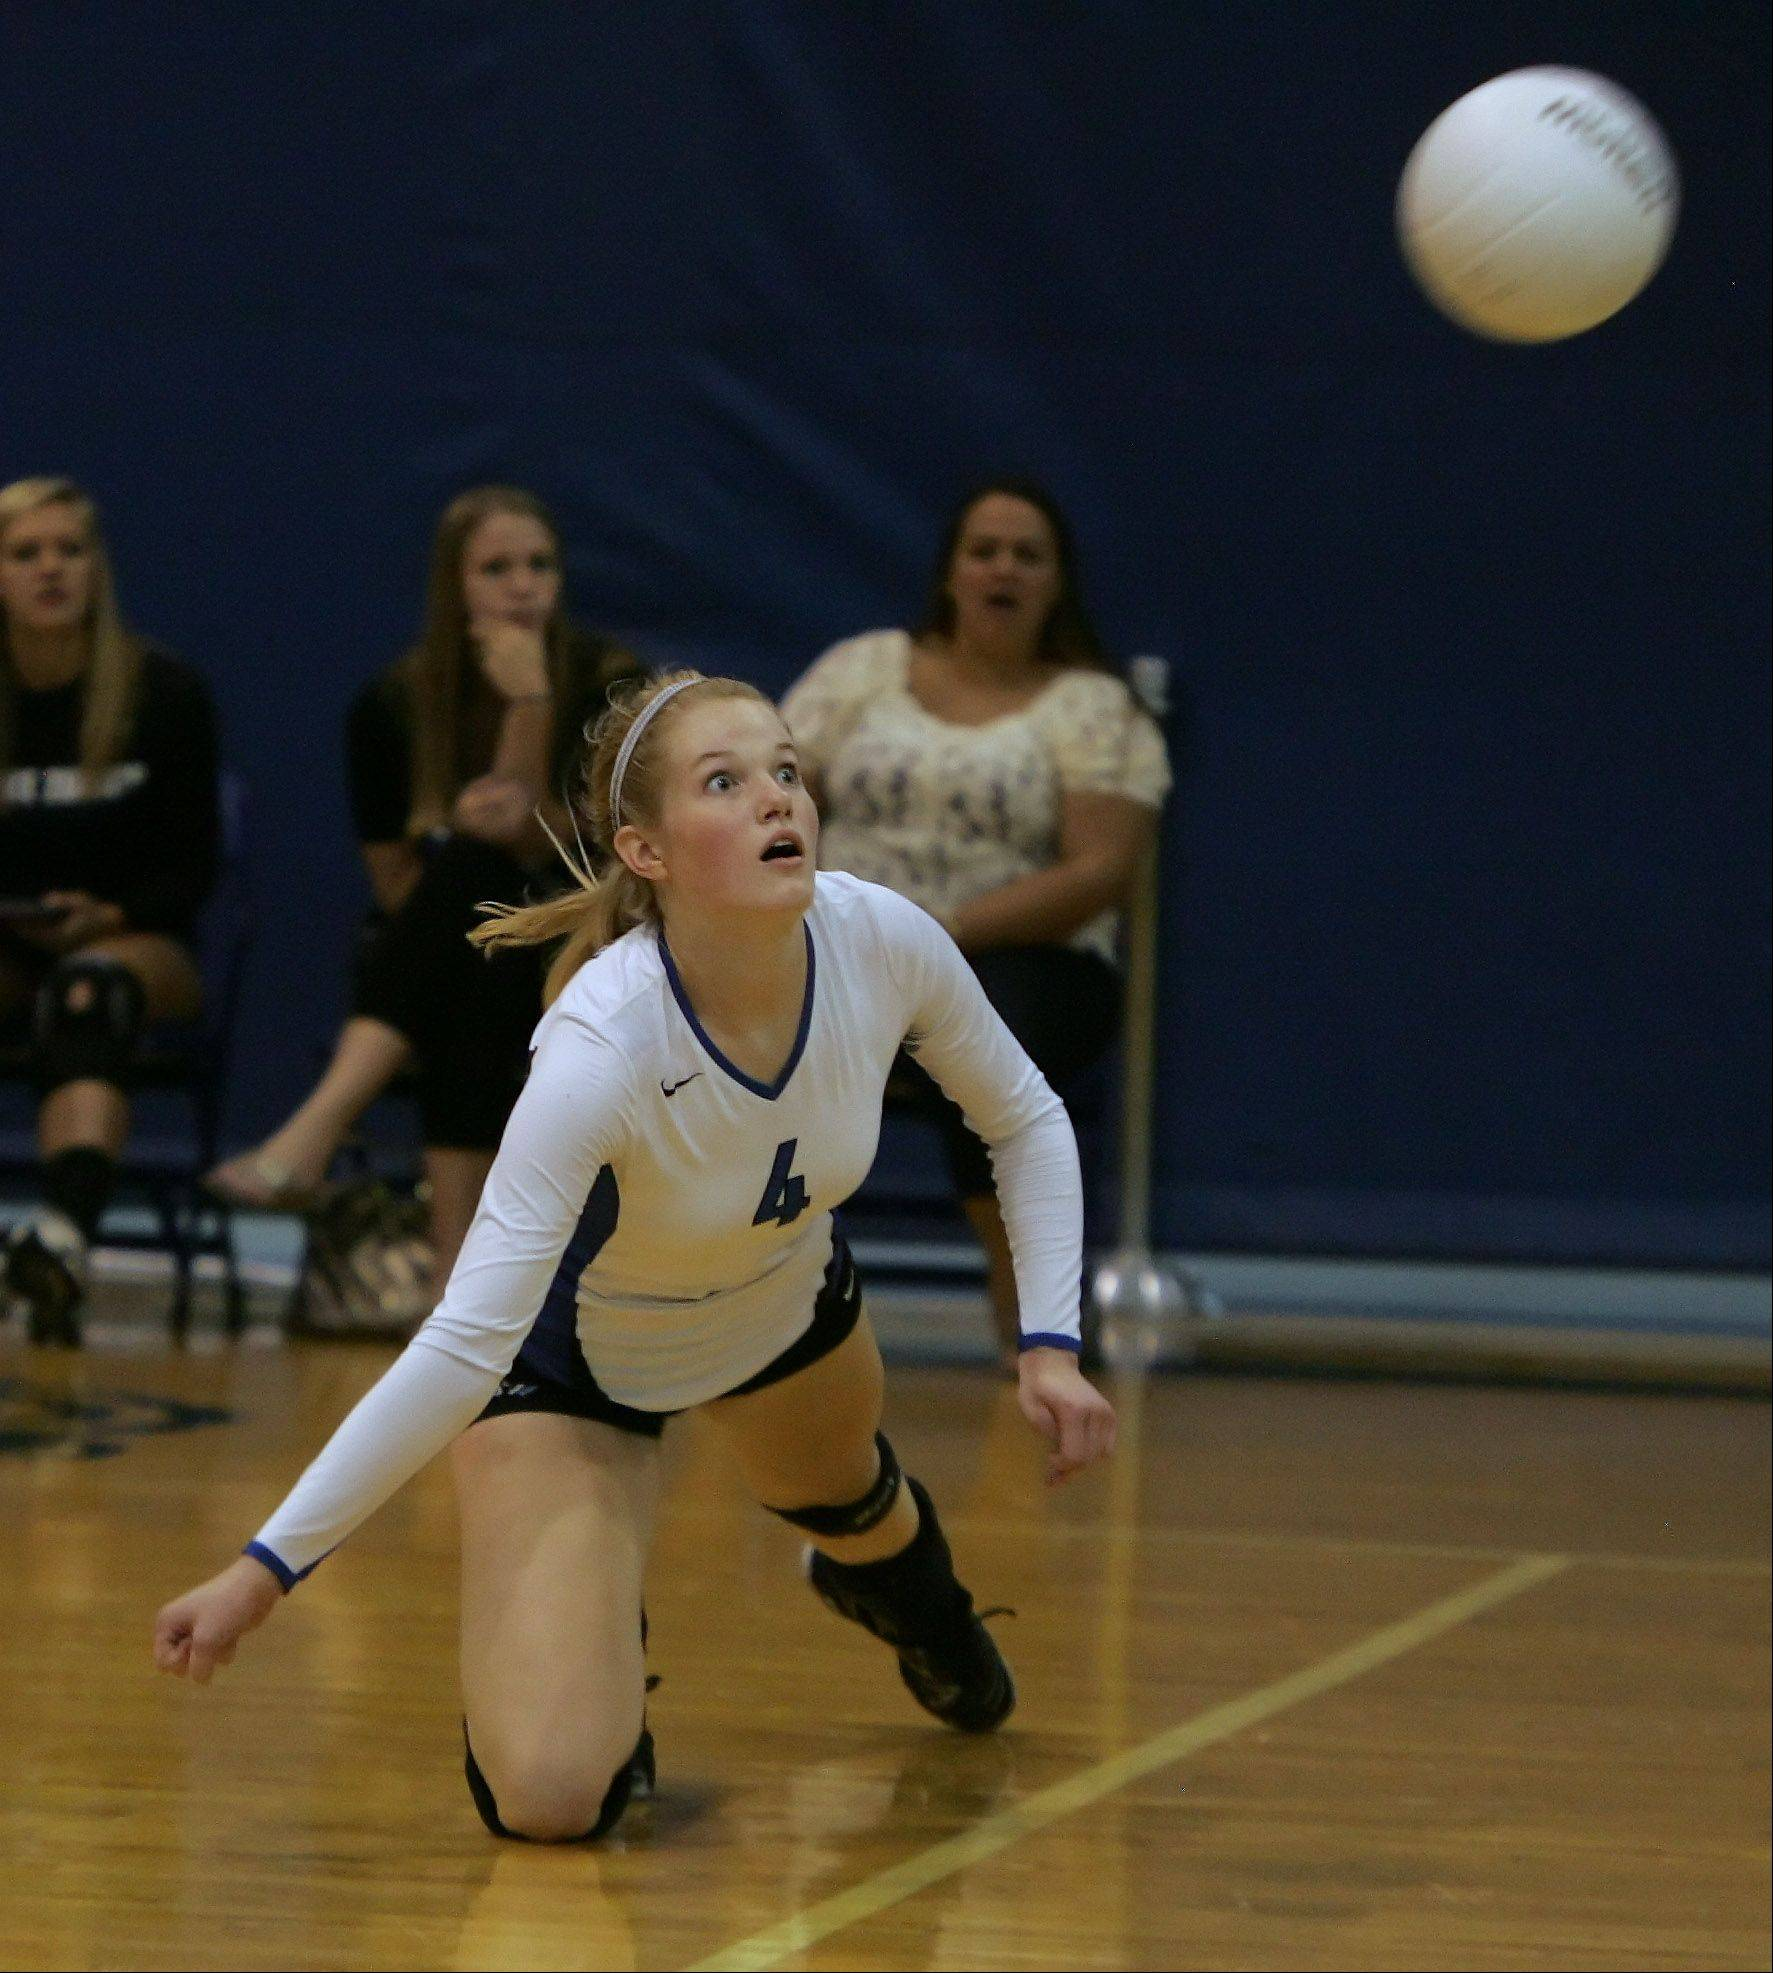 Lake Zurich's Kiley McPeek dives for the ball during the Prairie Ridge at Lake Zurich girls volleyball Tuesday.